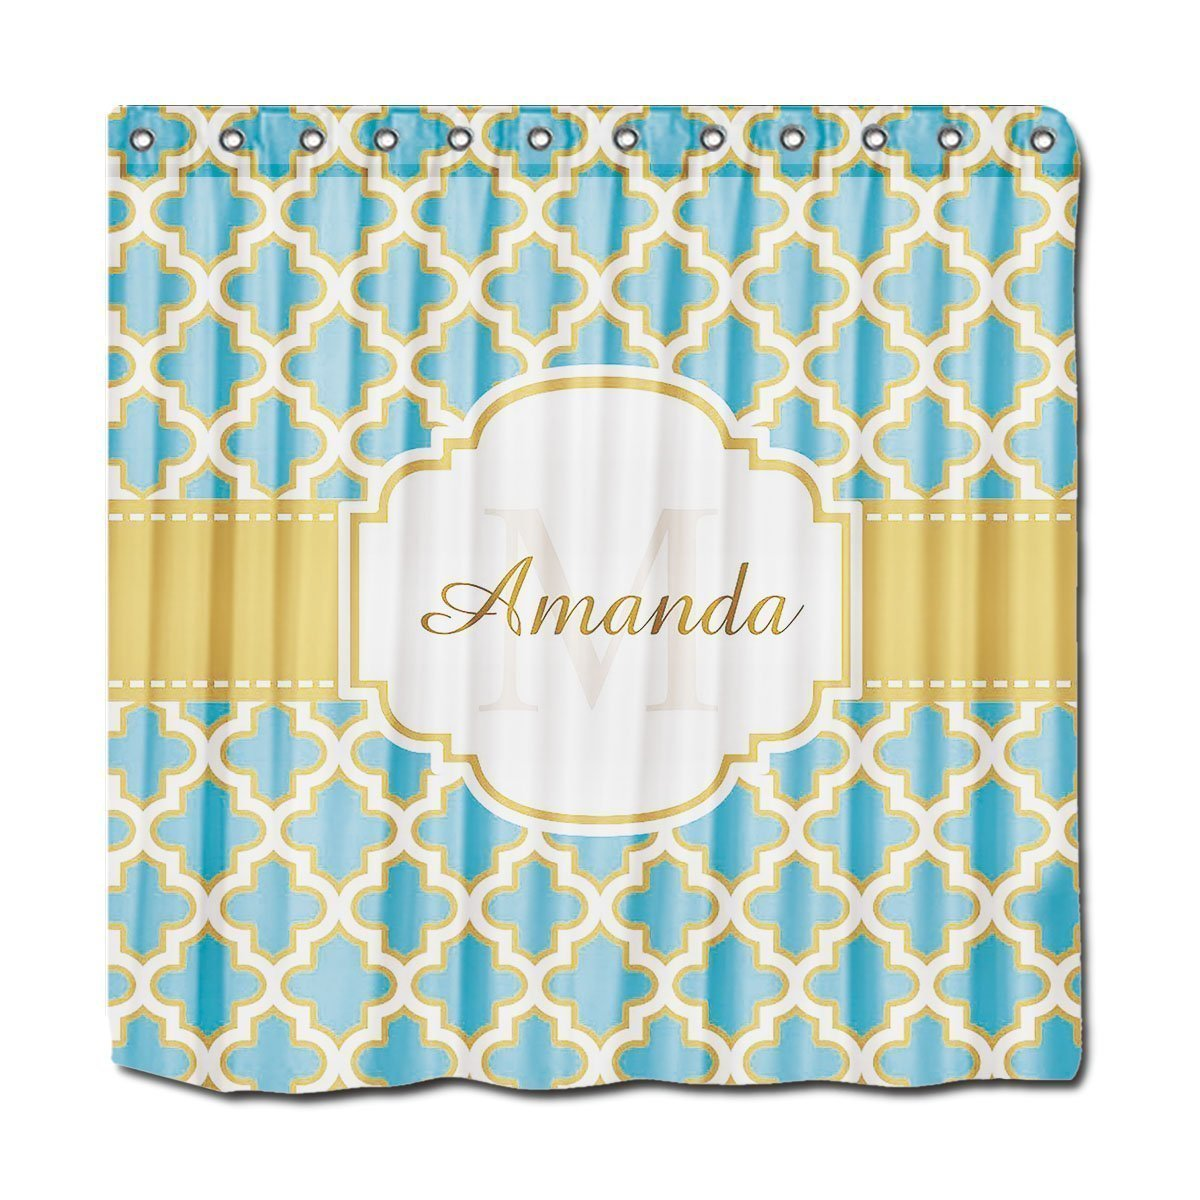 Blue moroccan curtains - Memory Home Personalized Shower Curtains Moroccan Lattice Monogram Elegant Gold Teal Blue Polyester Fabric Shower Curtain